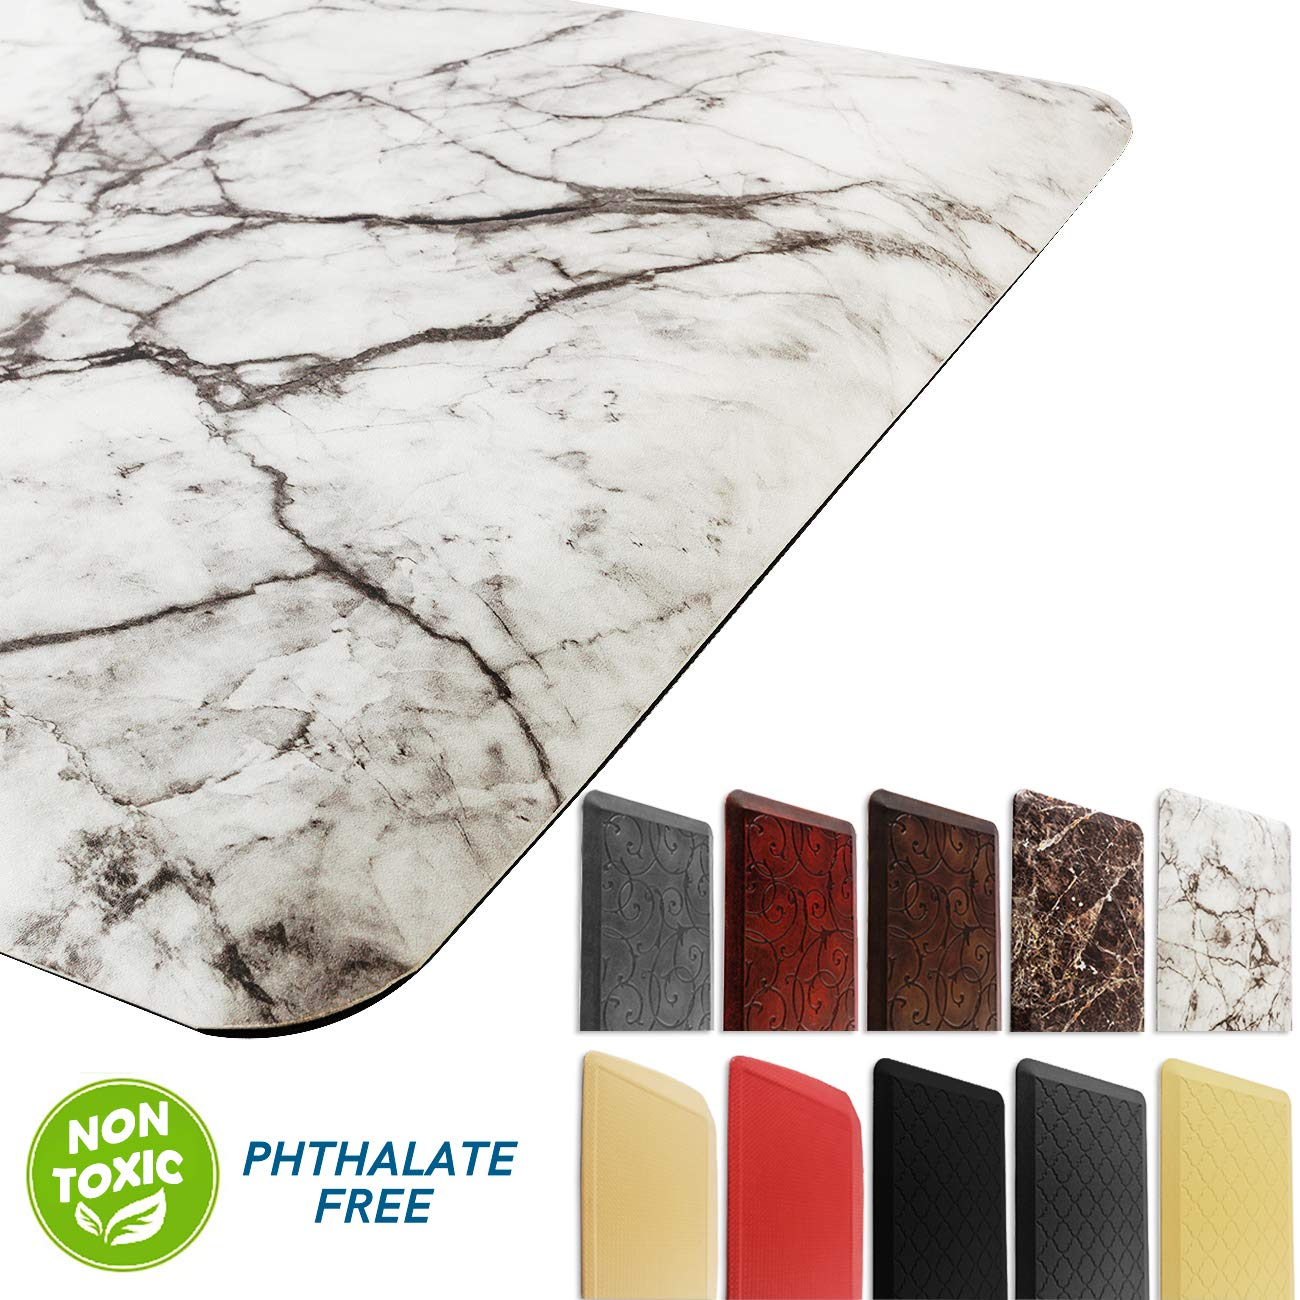 Marble Kitchen Mat Anti Fatigue Standing Mat Waterproof Nonslip Cushioned Rugs for Office Computer Desk W20x L36x H3/4'' by EverGrace